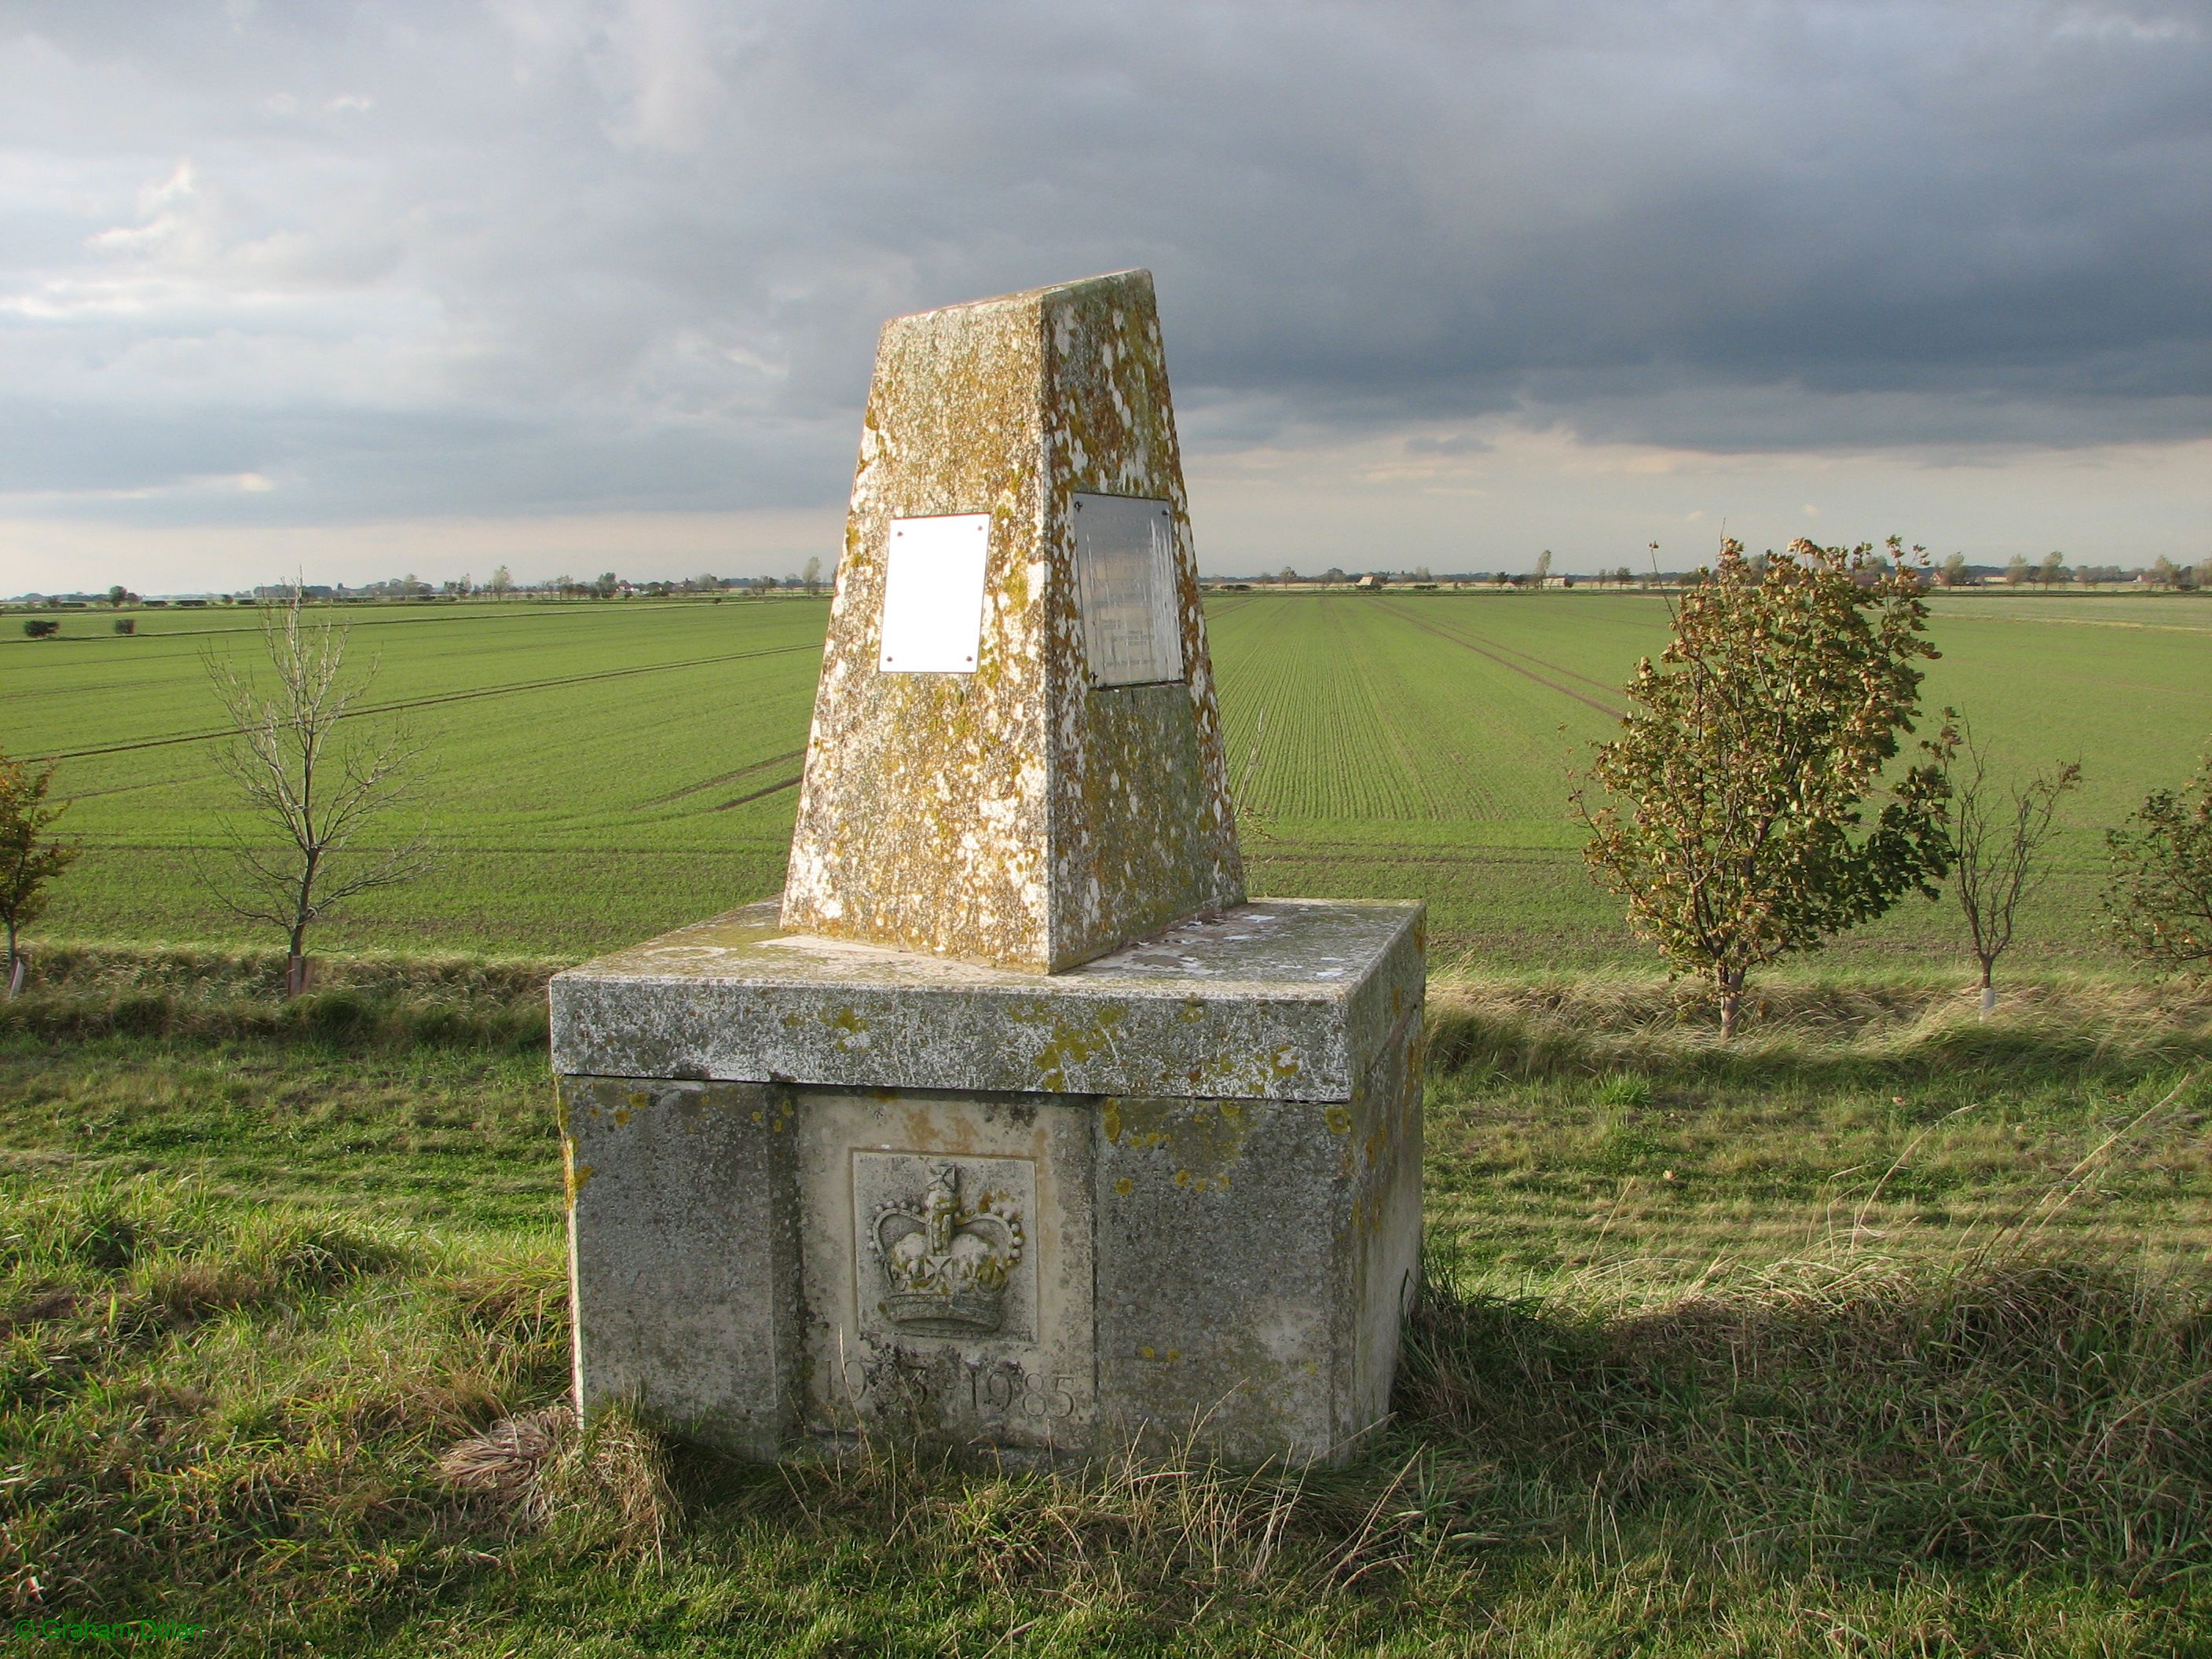 Greenwich Meridian Marker; England; East Yorkshire; Sunk Island